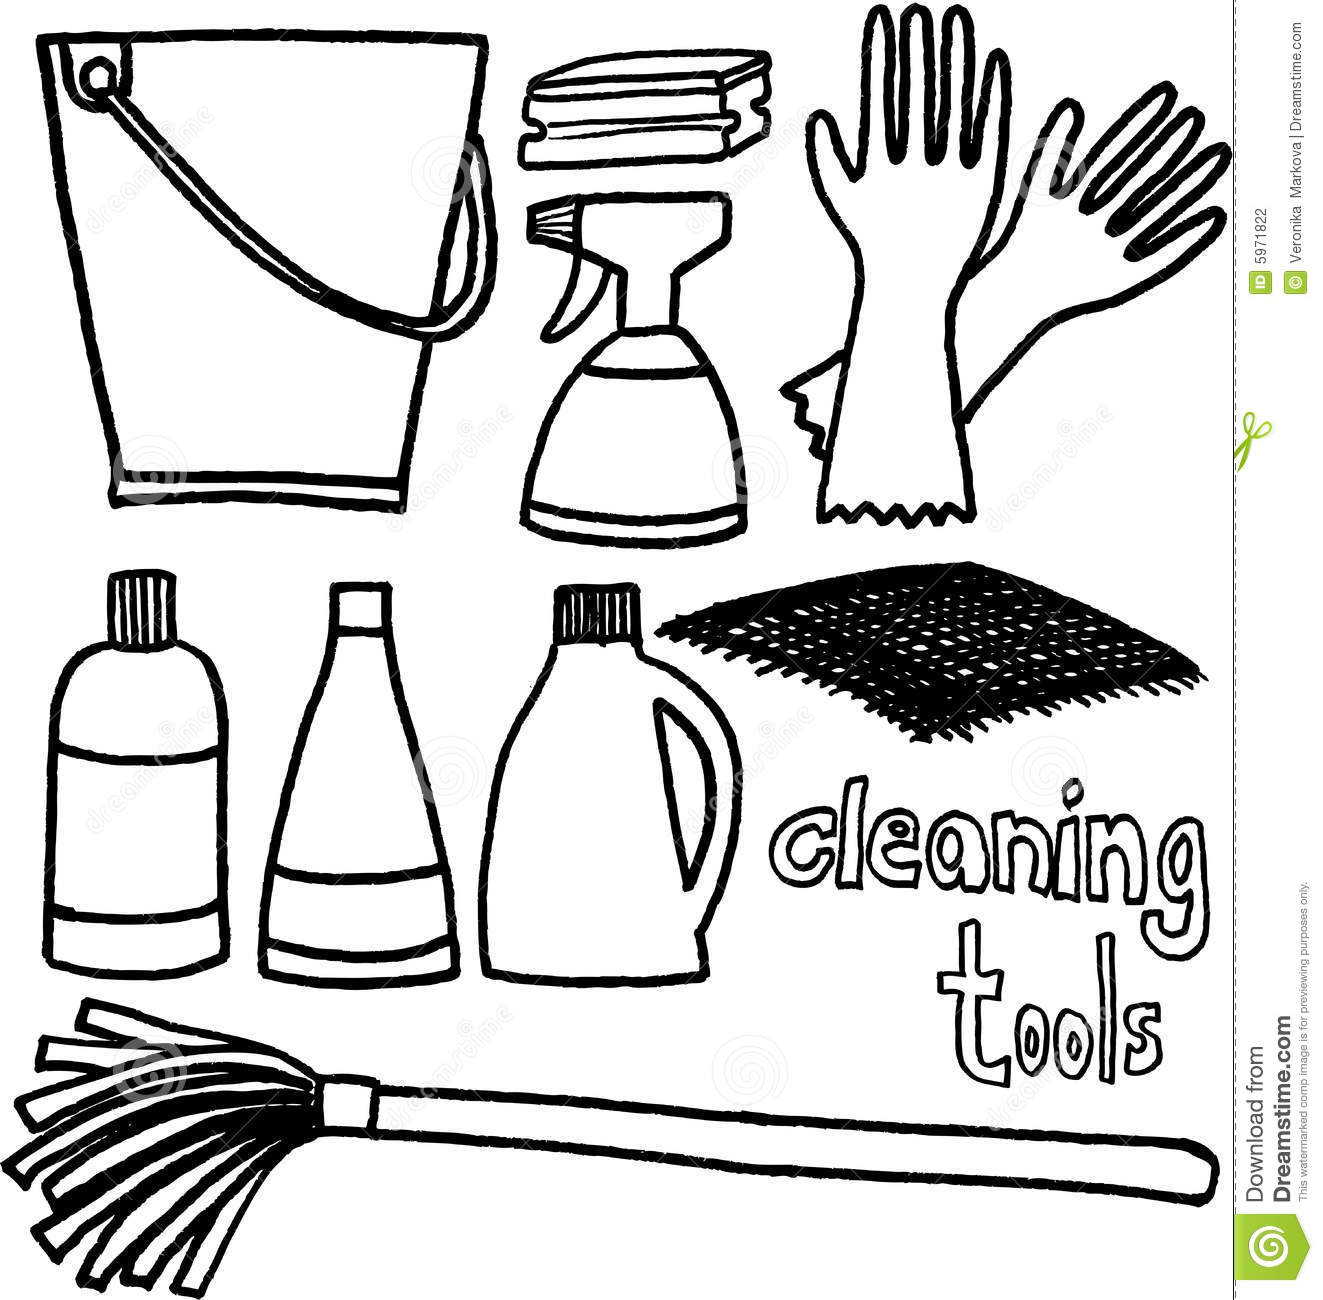 Cleaning Tools Stock Vector Image Of Swab Articles